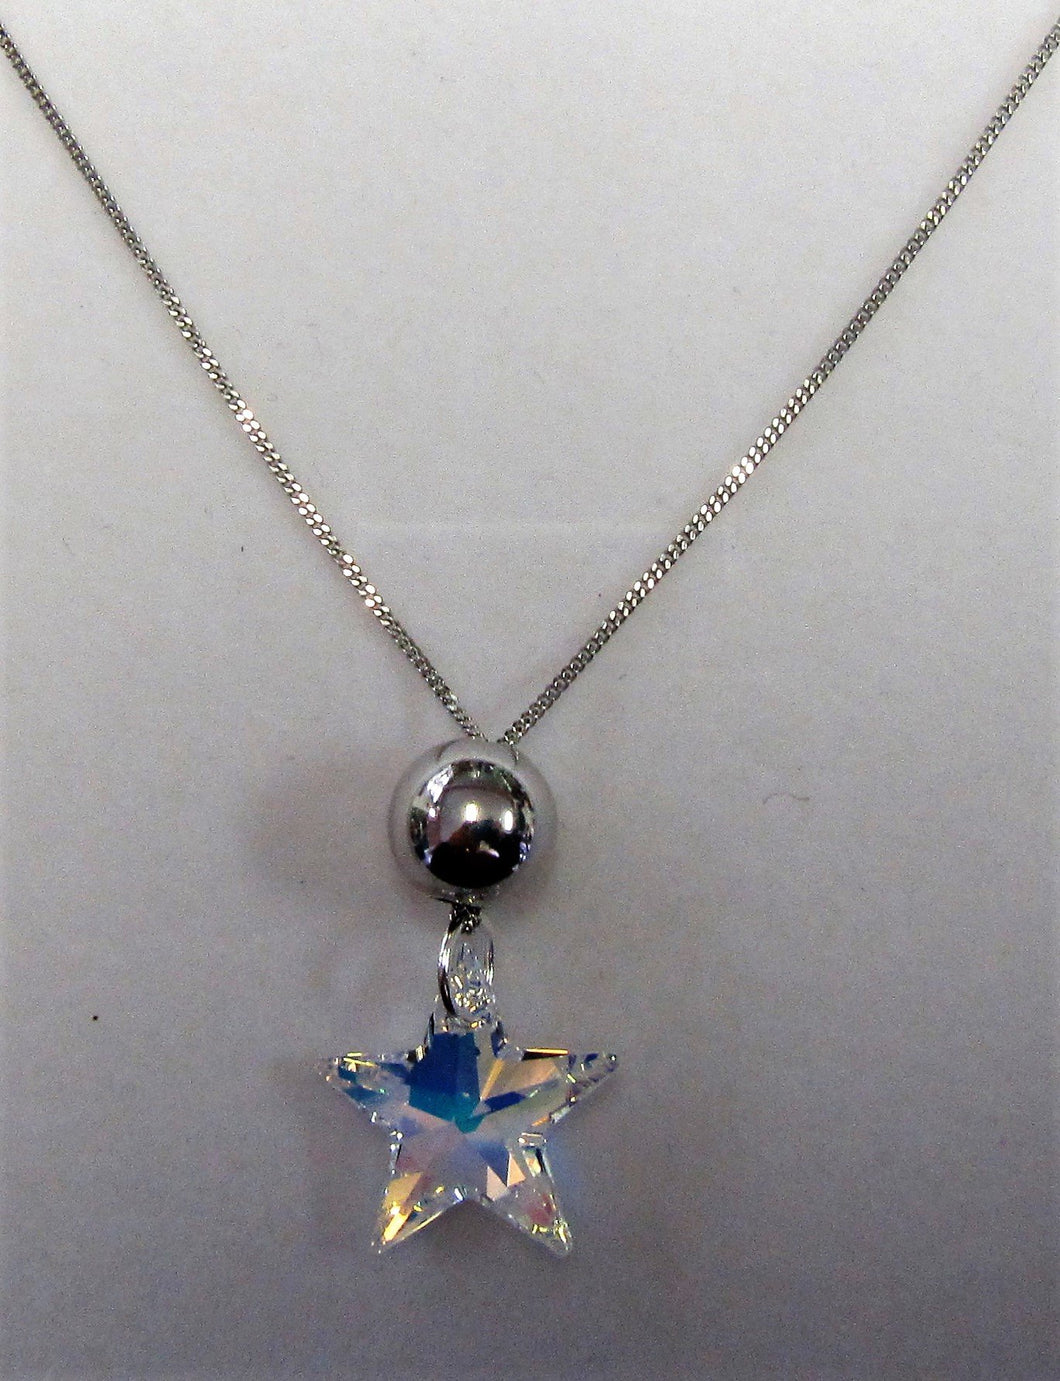 Handcrafted 925 sterling silver necklace with clear swarovski crystal star pendant